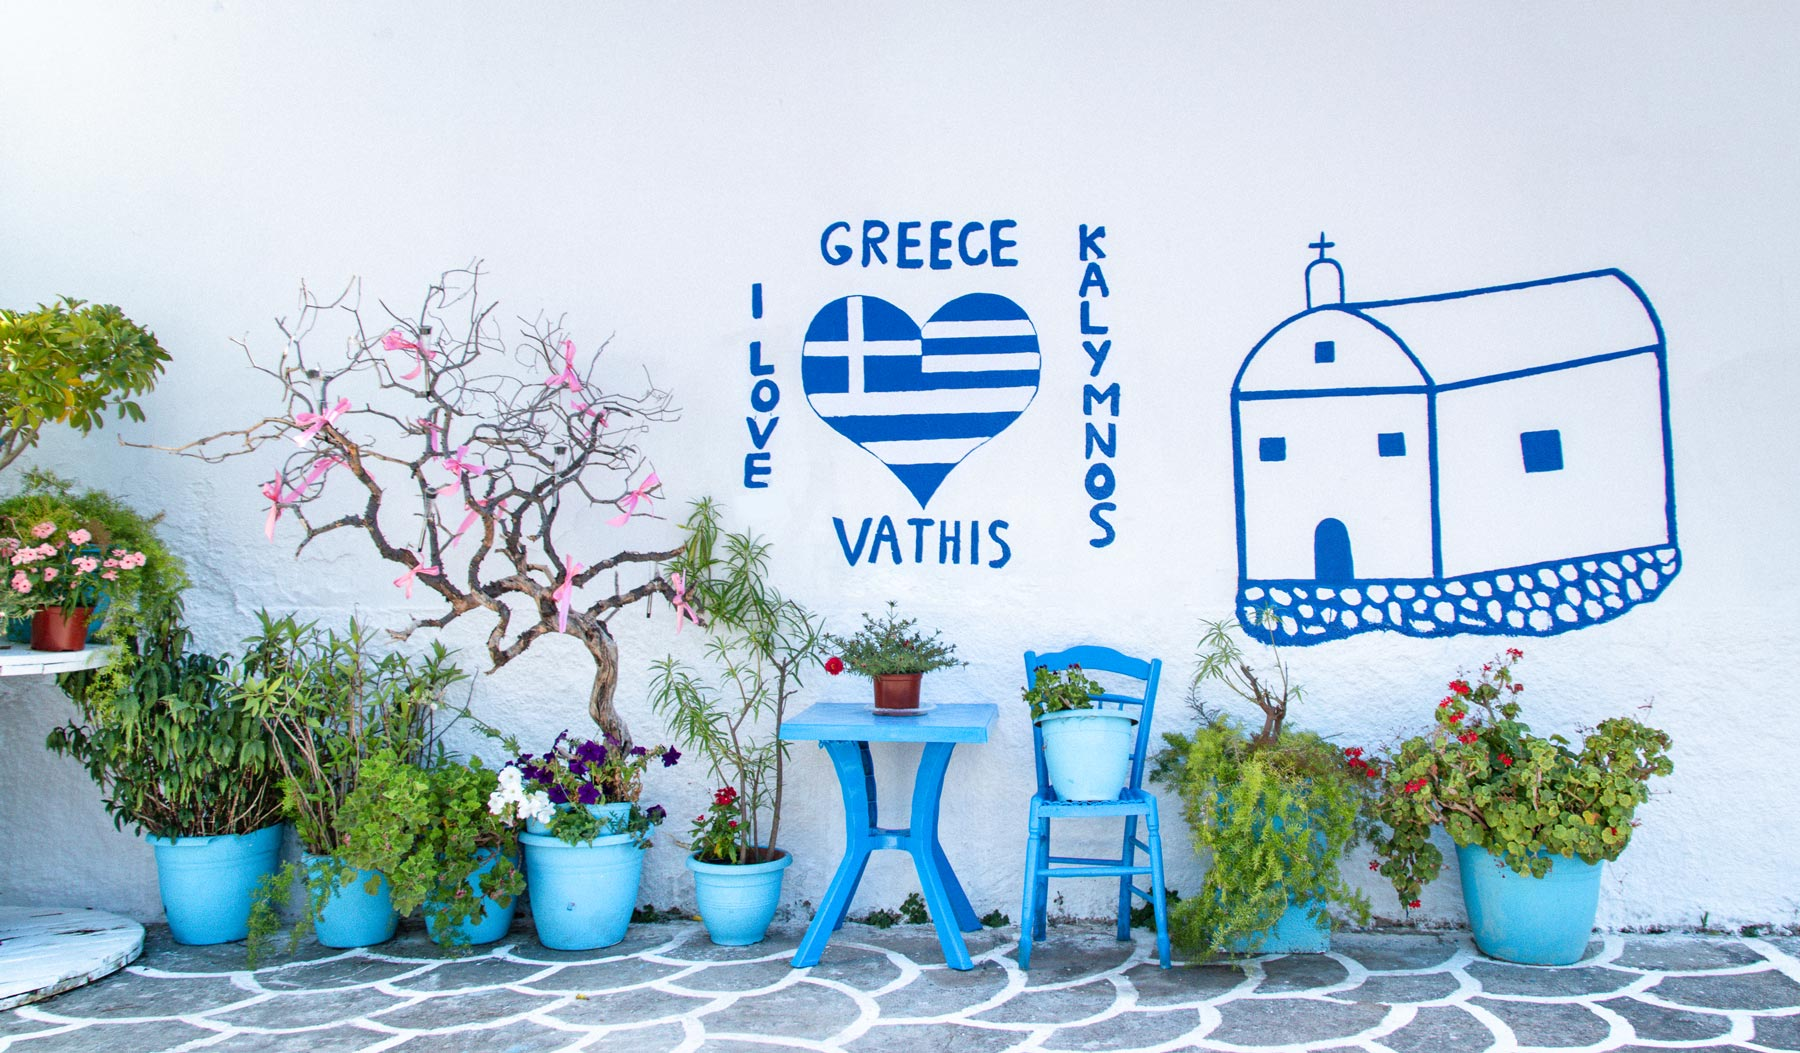 From Kalymnos with love